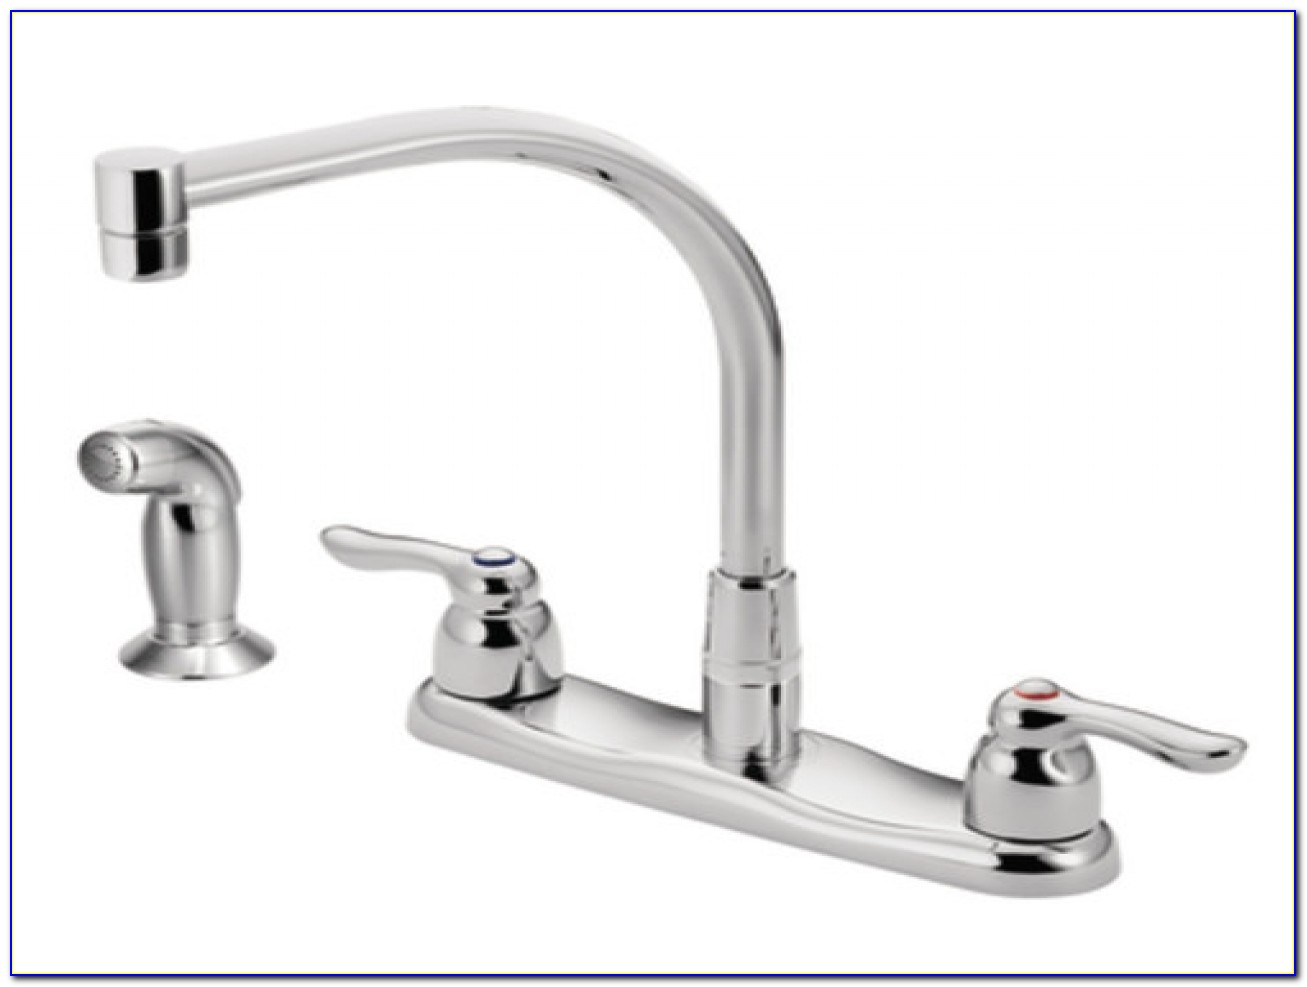 Moen Two Handle Kitchen Faucet Kitchens With Corner Sinks Modern Contemporary Homes